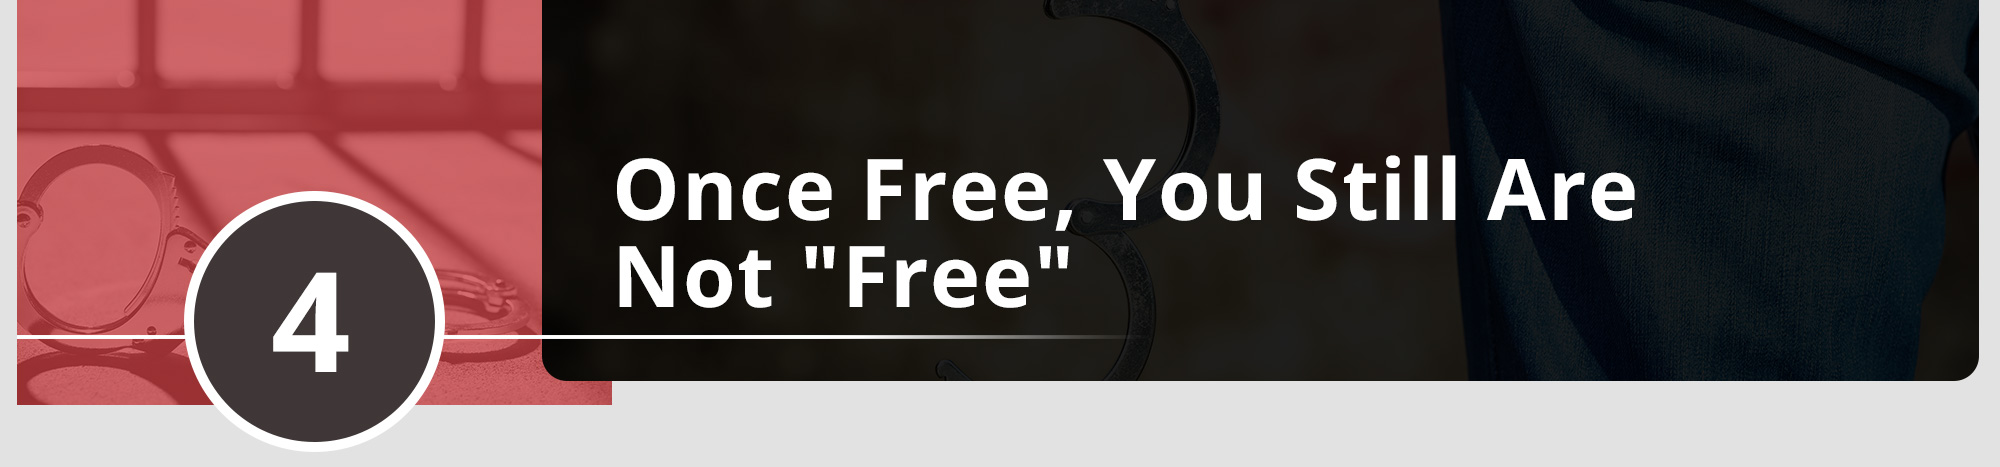 """Once Free, You Still Are Not """"Free"""""""